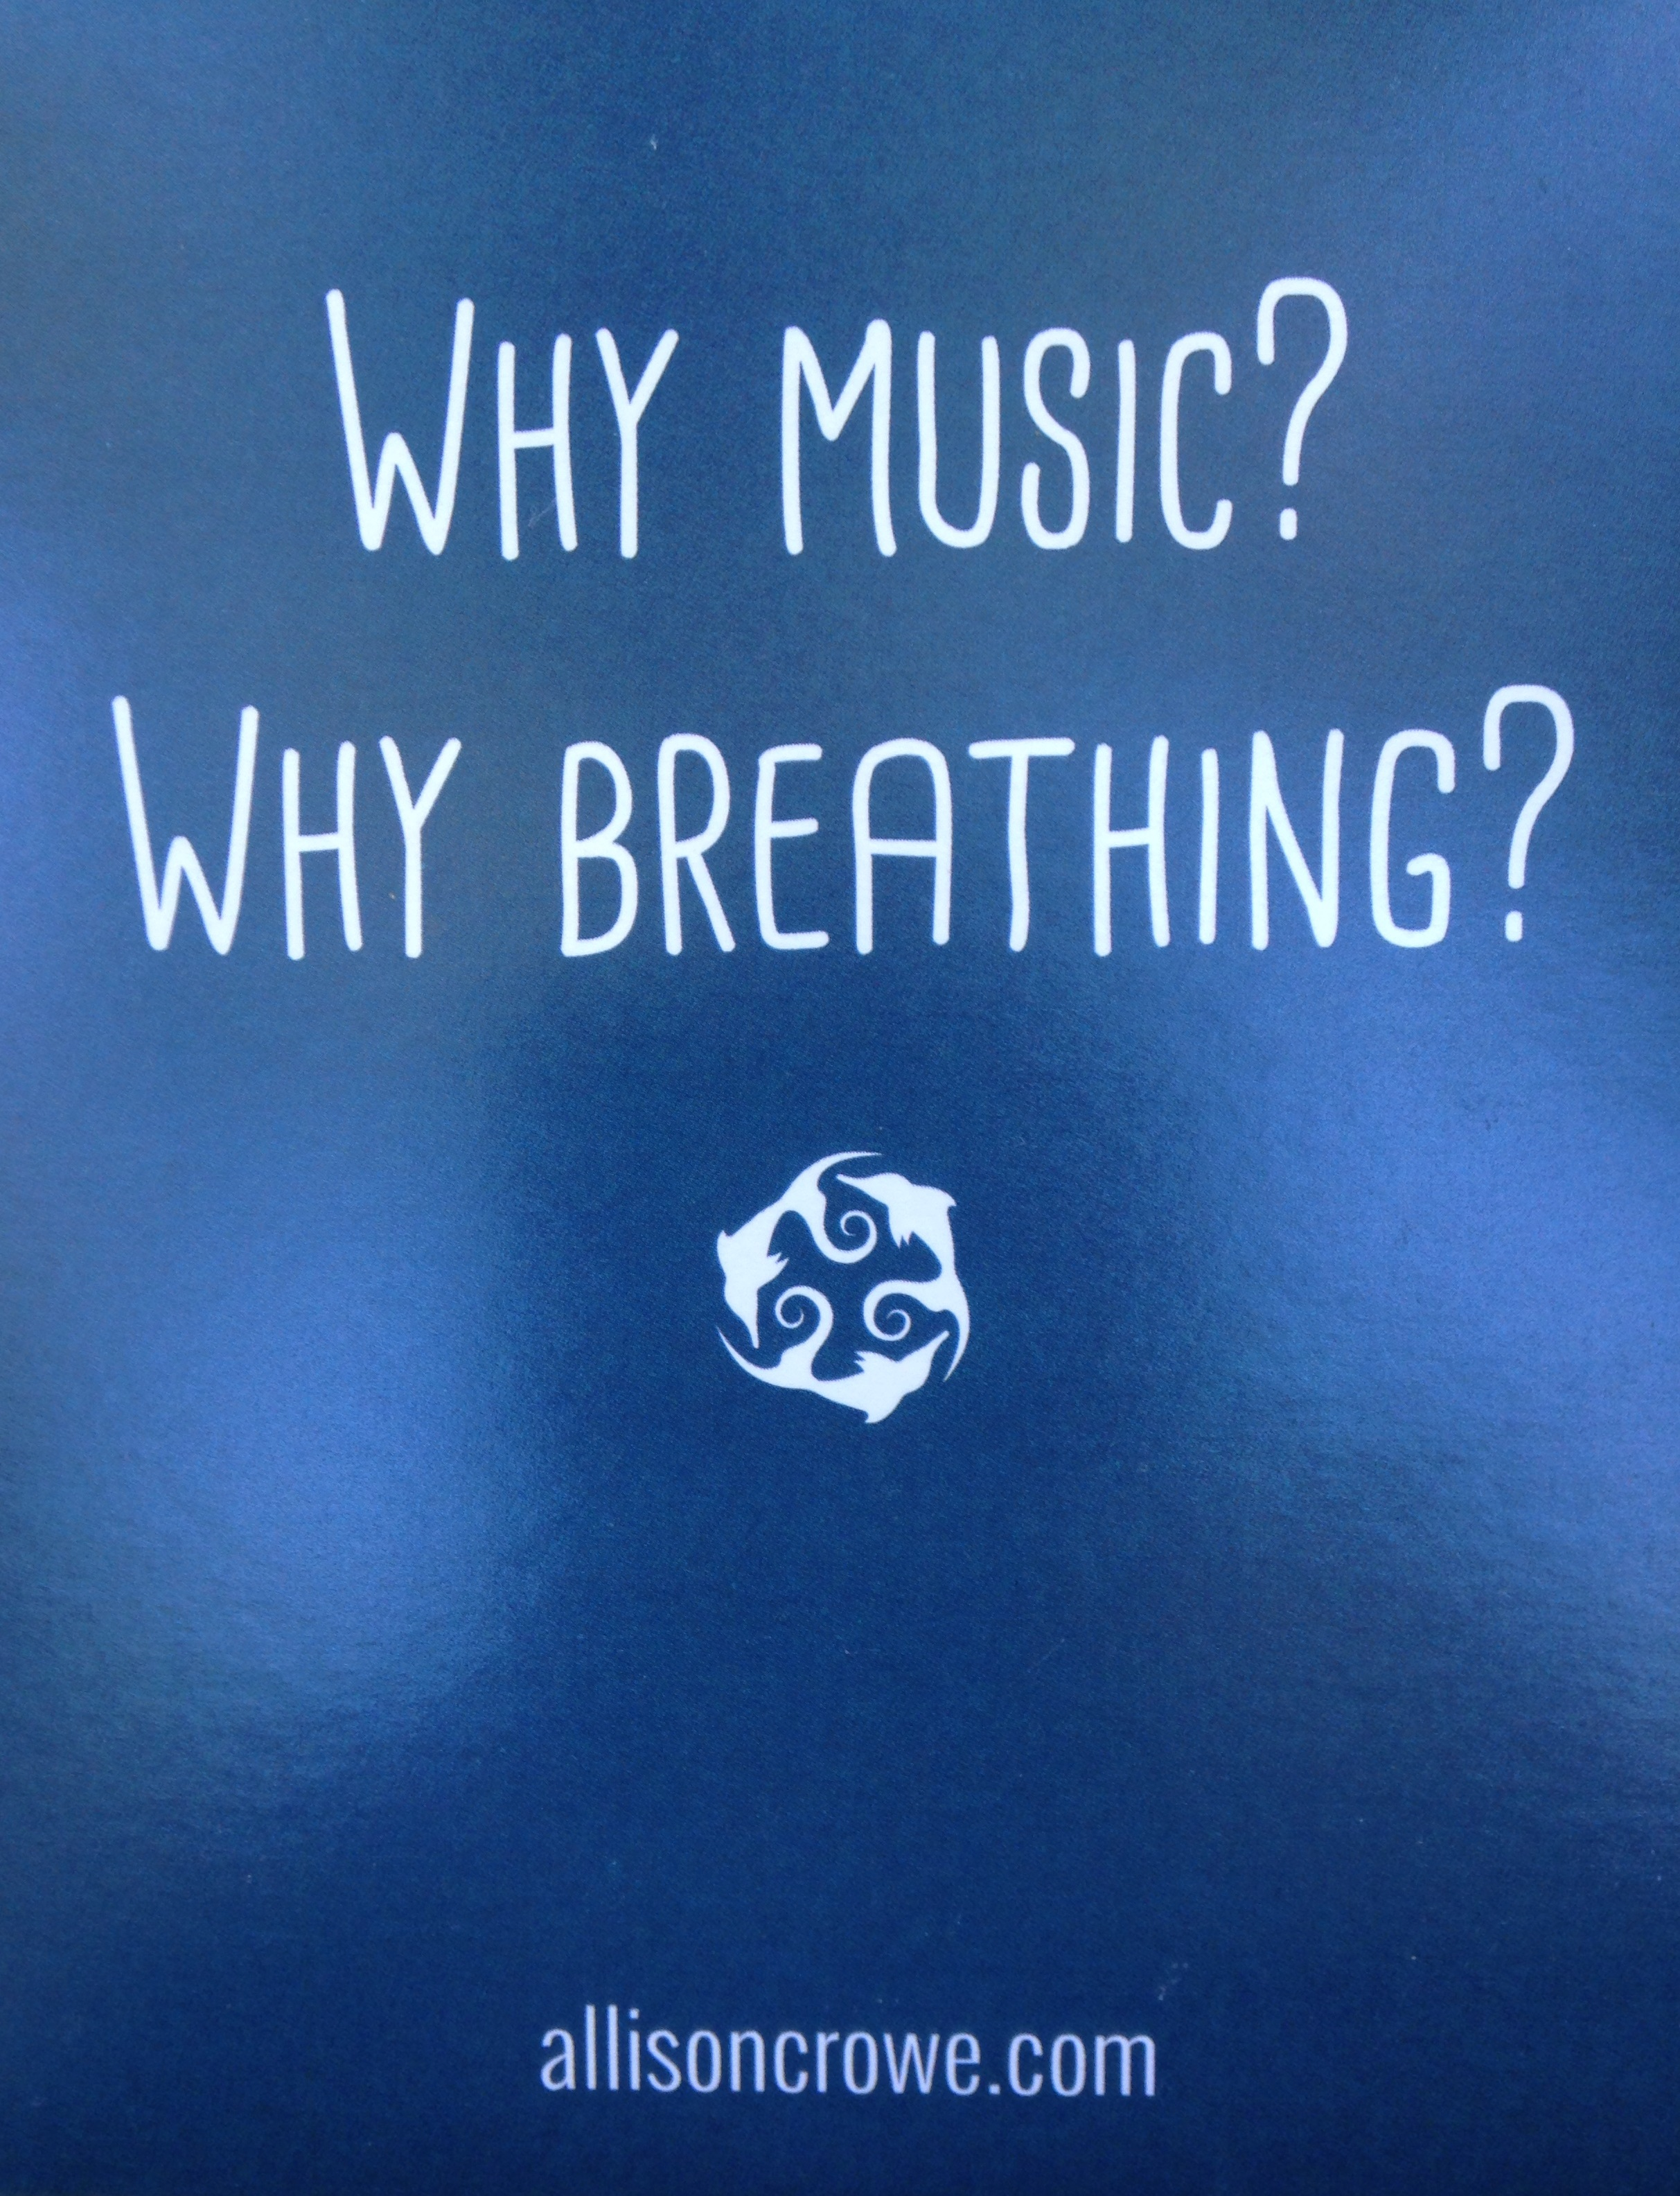 Allison Crowe and Band - Why music? Why breathing?